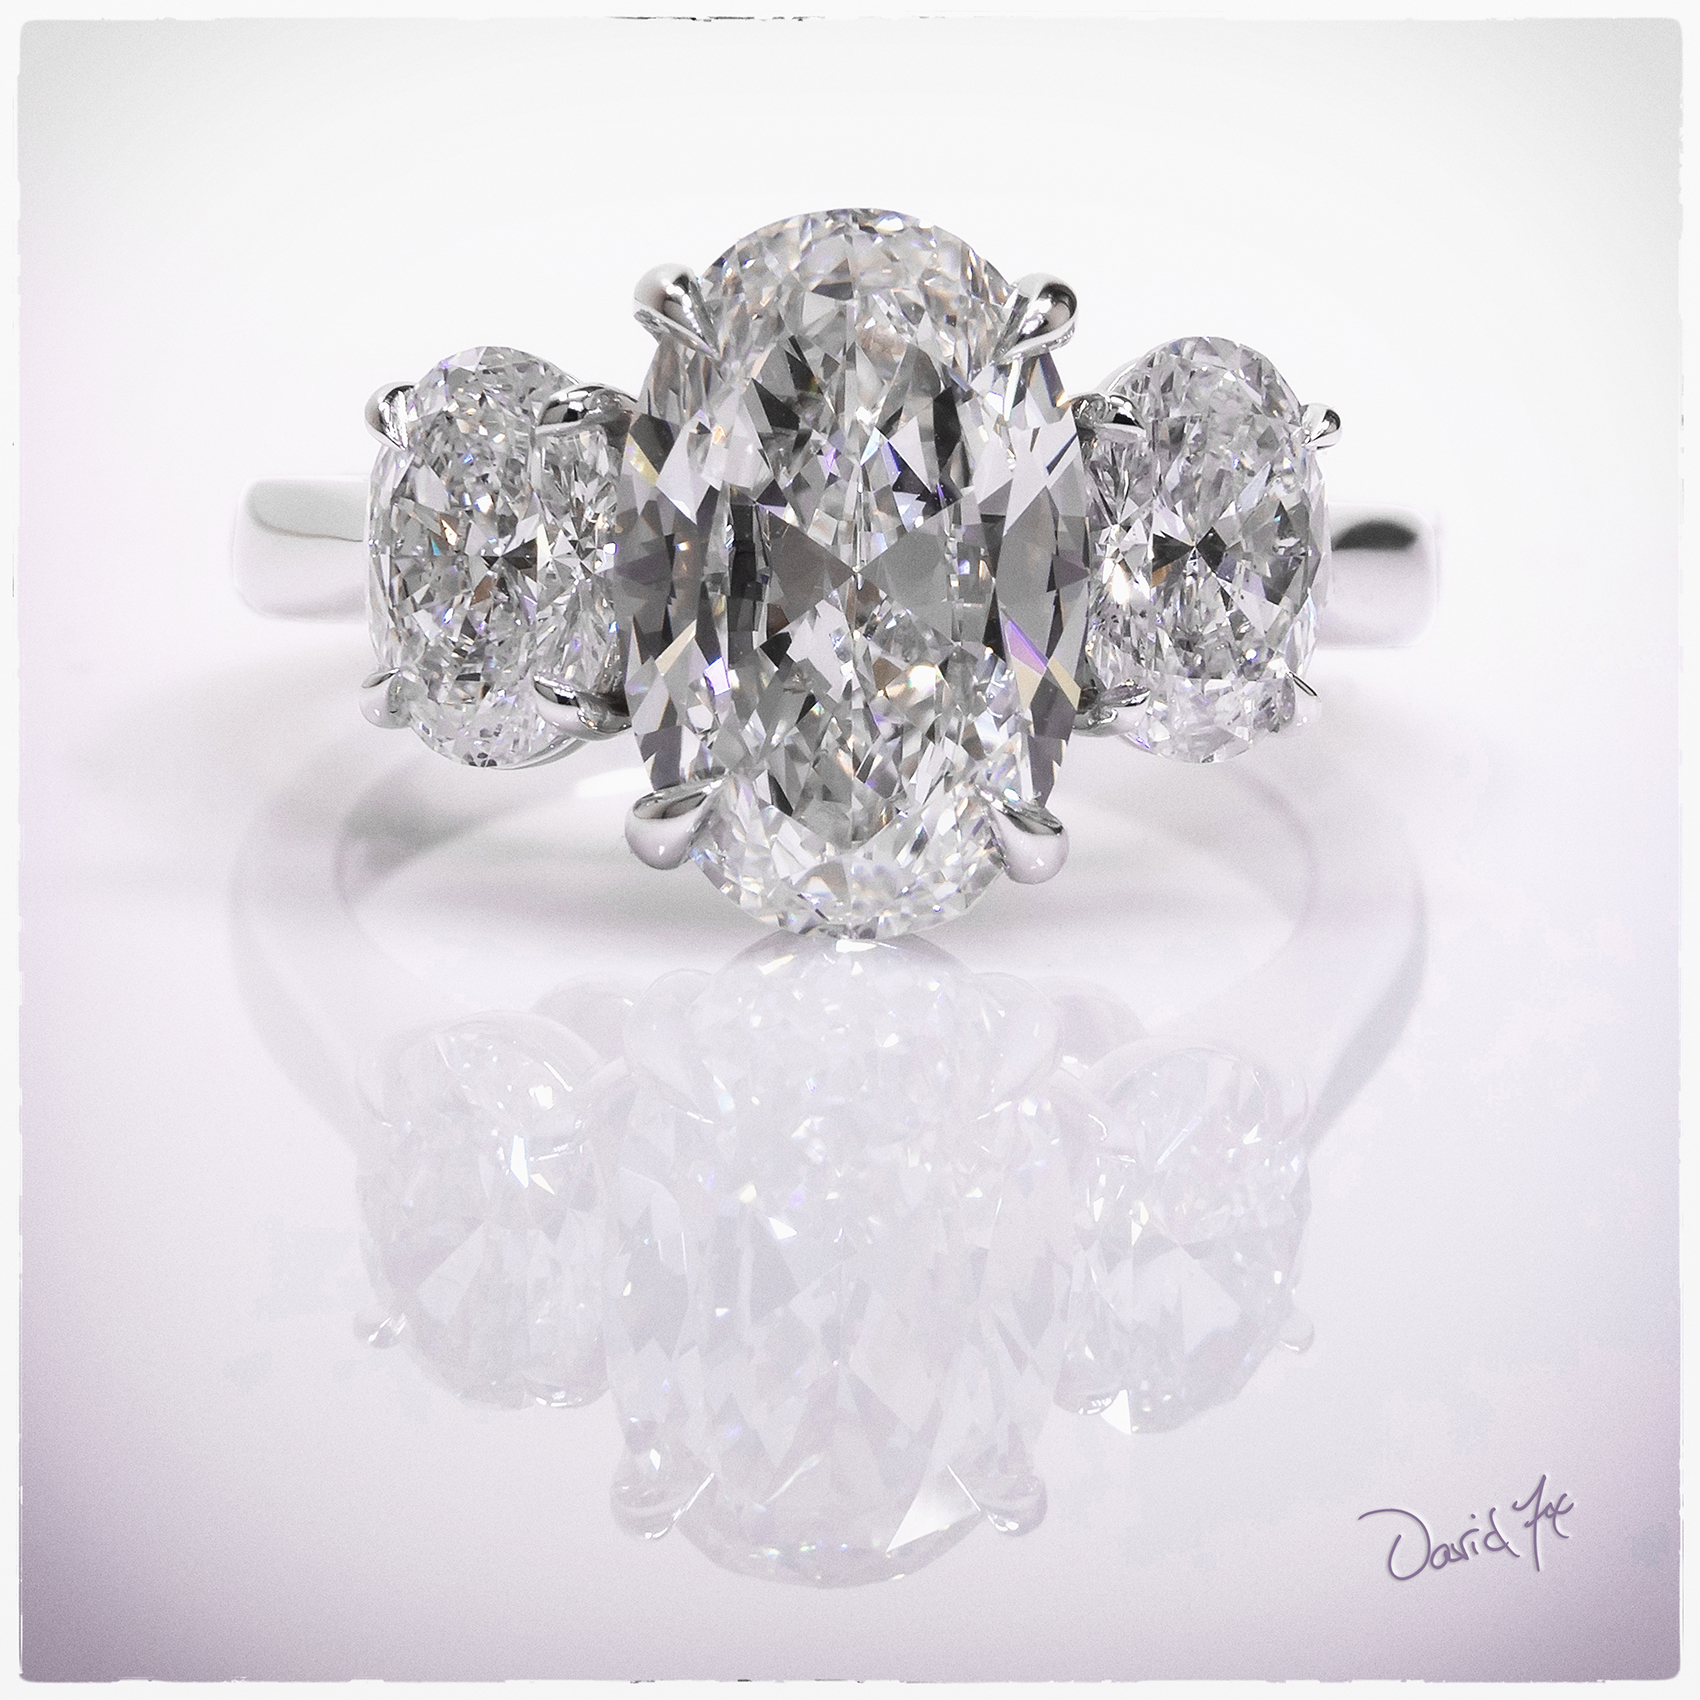 Diamond Wedding Ring Jewelry DePrisco Jewelers of Wellesley MA.